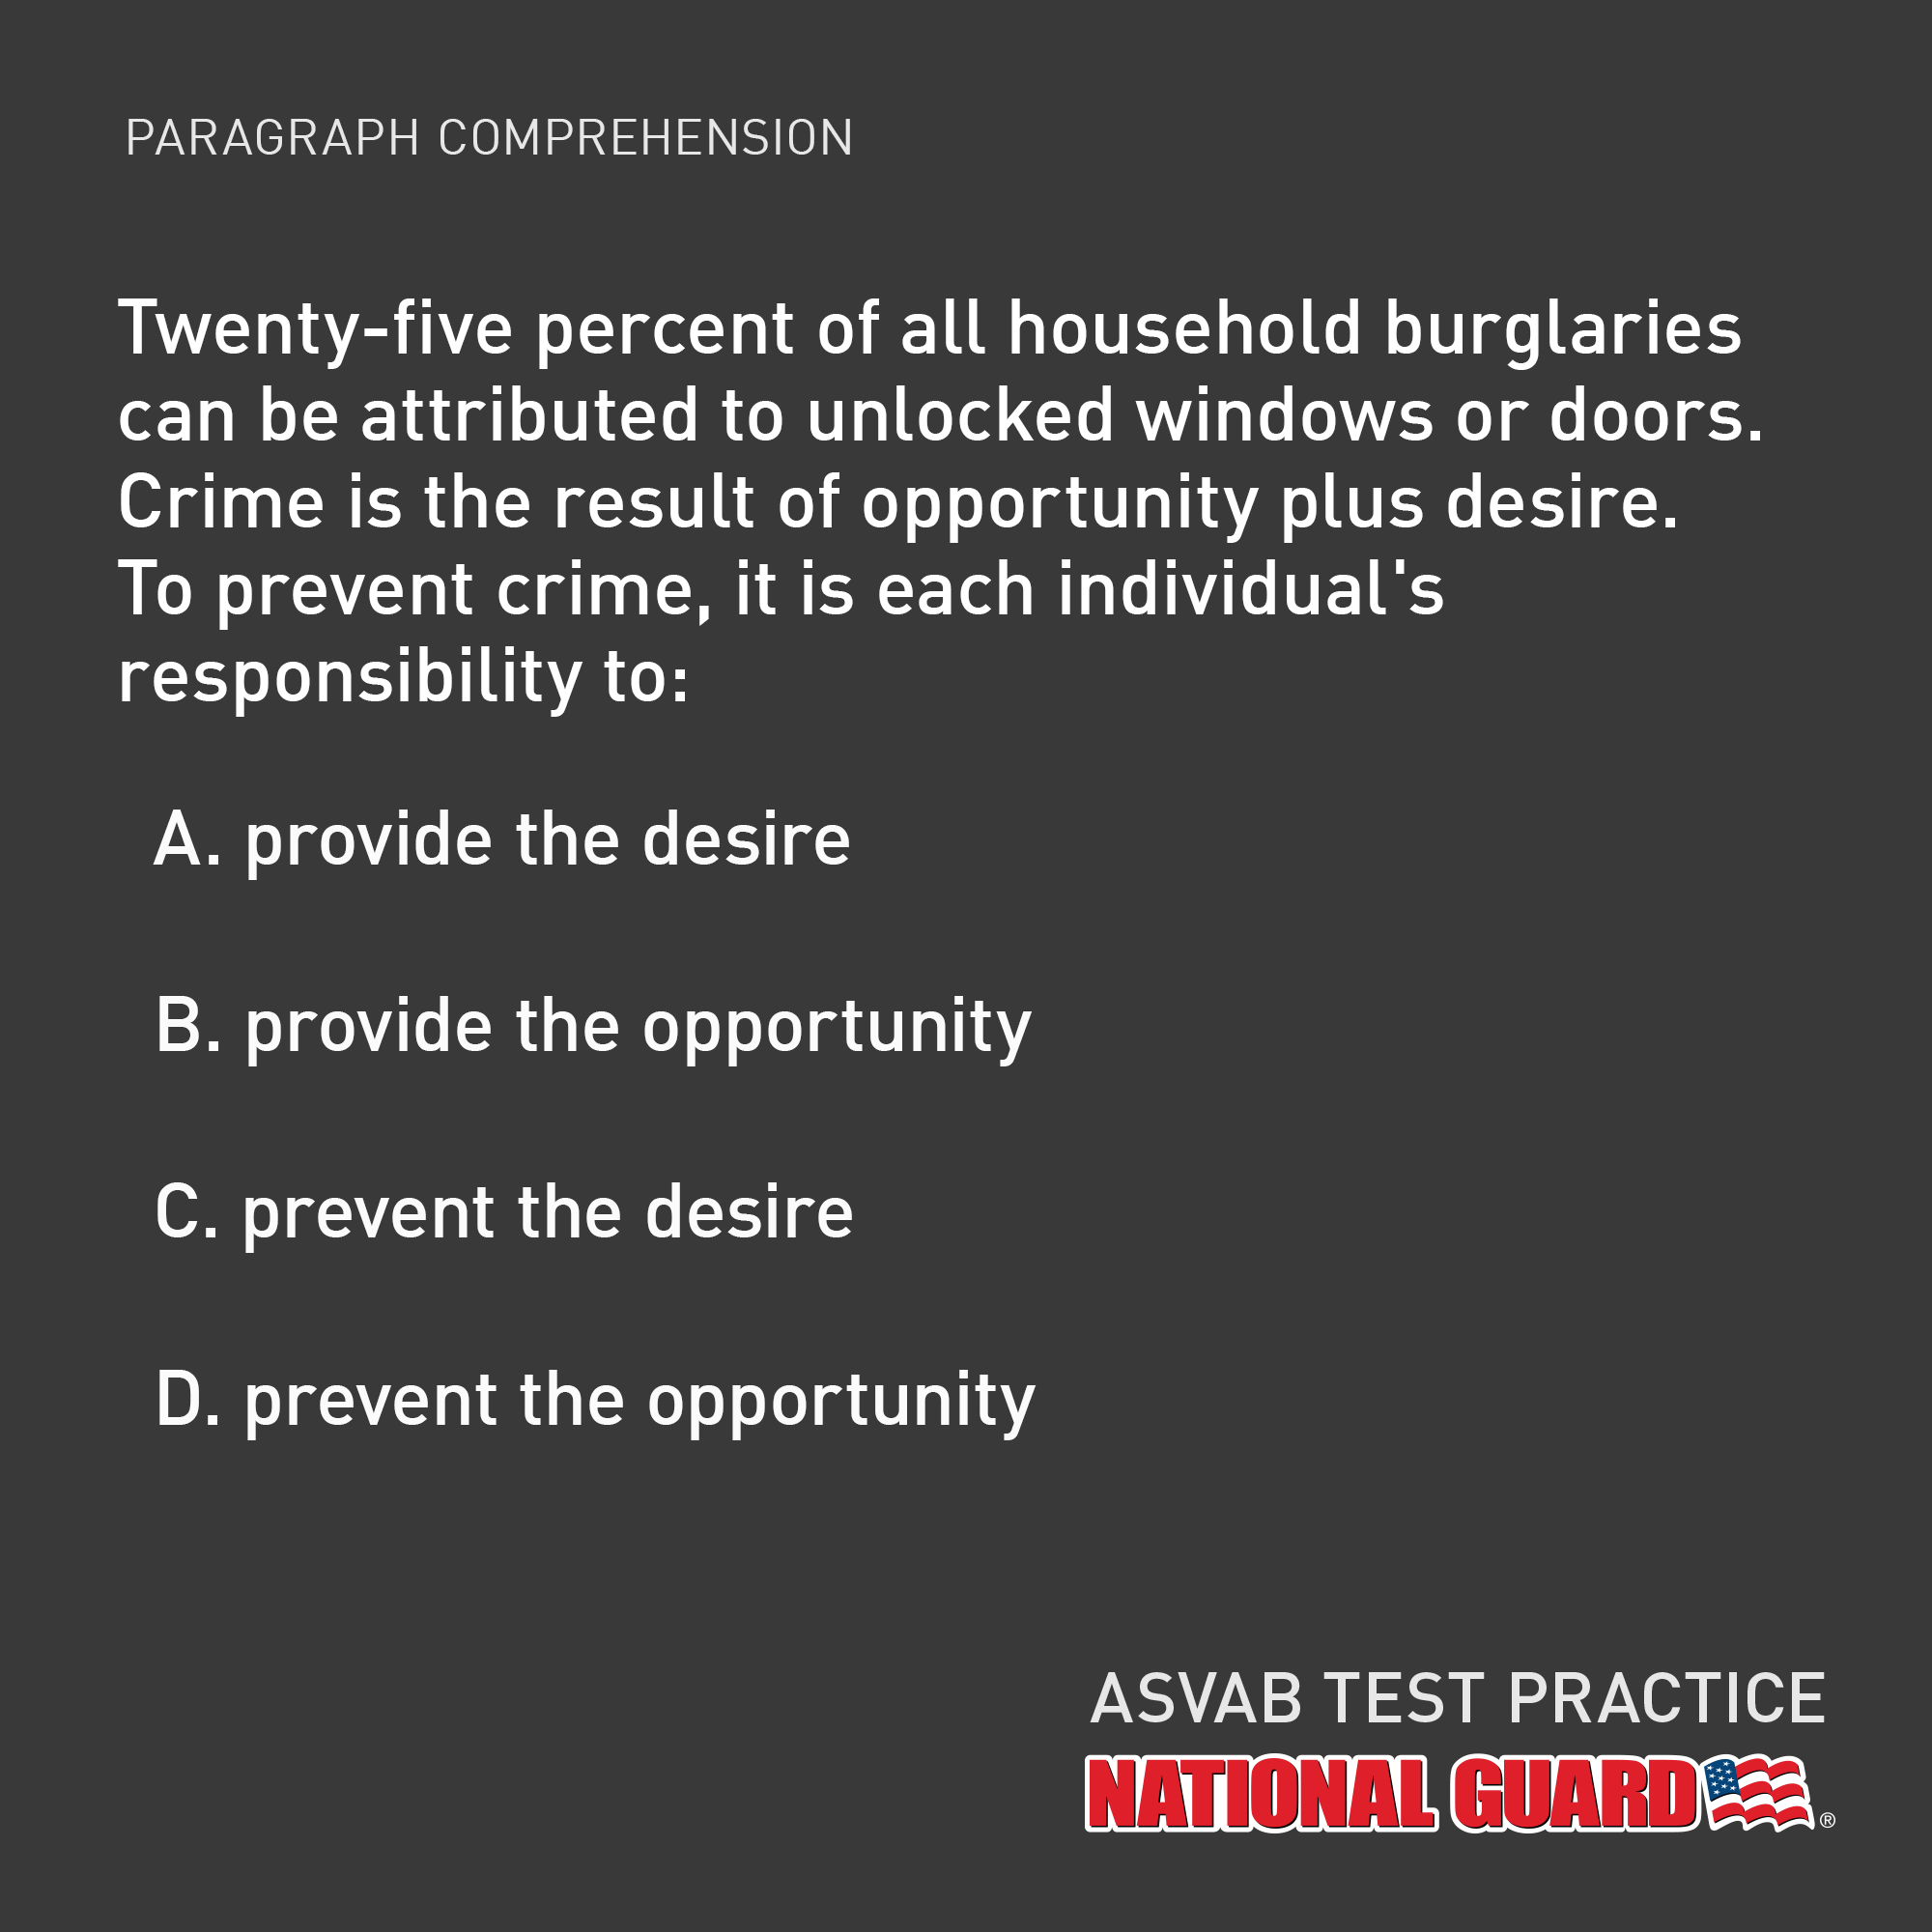 ANSWER! D Prevent the opportunity Army national guard